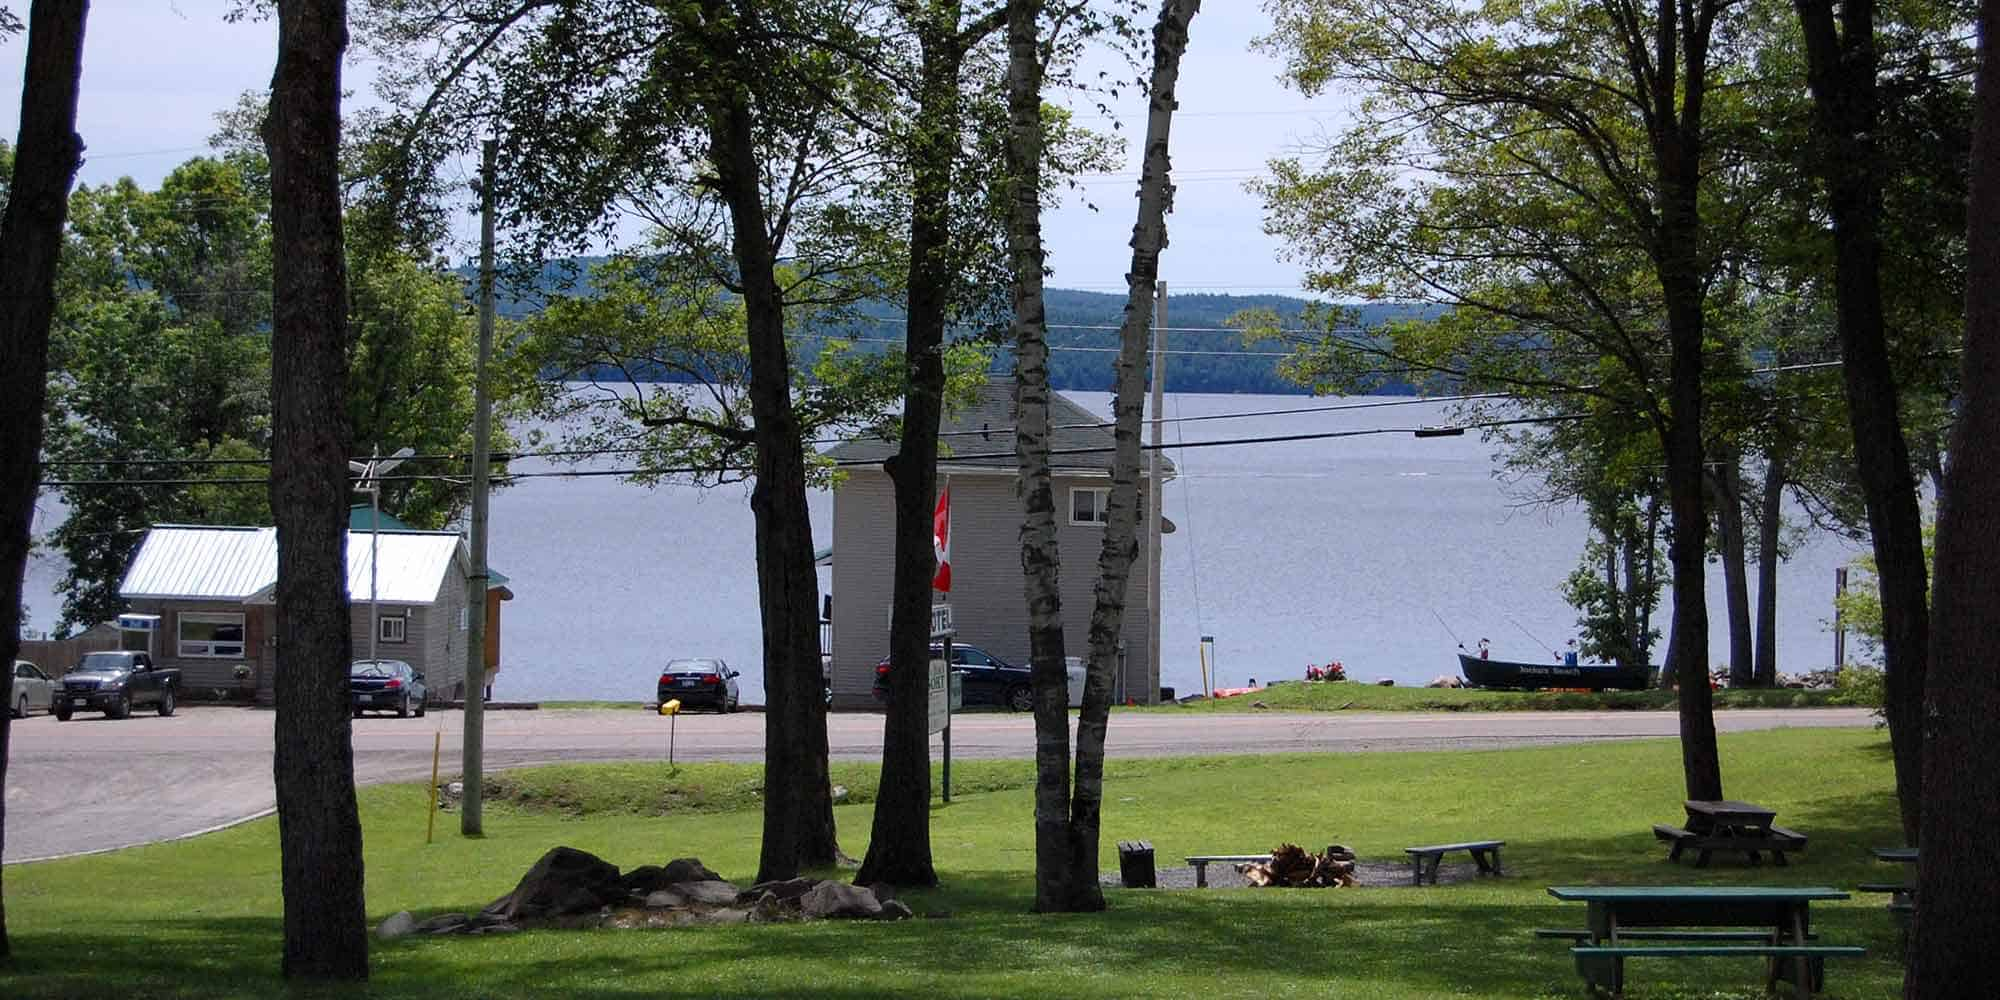 Back of Lakeside House as seen from the Motel with Calabogie Lake